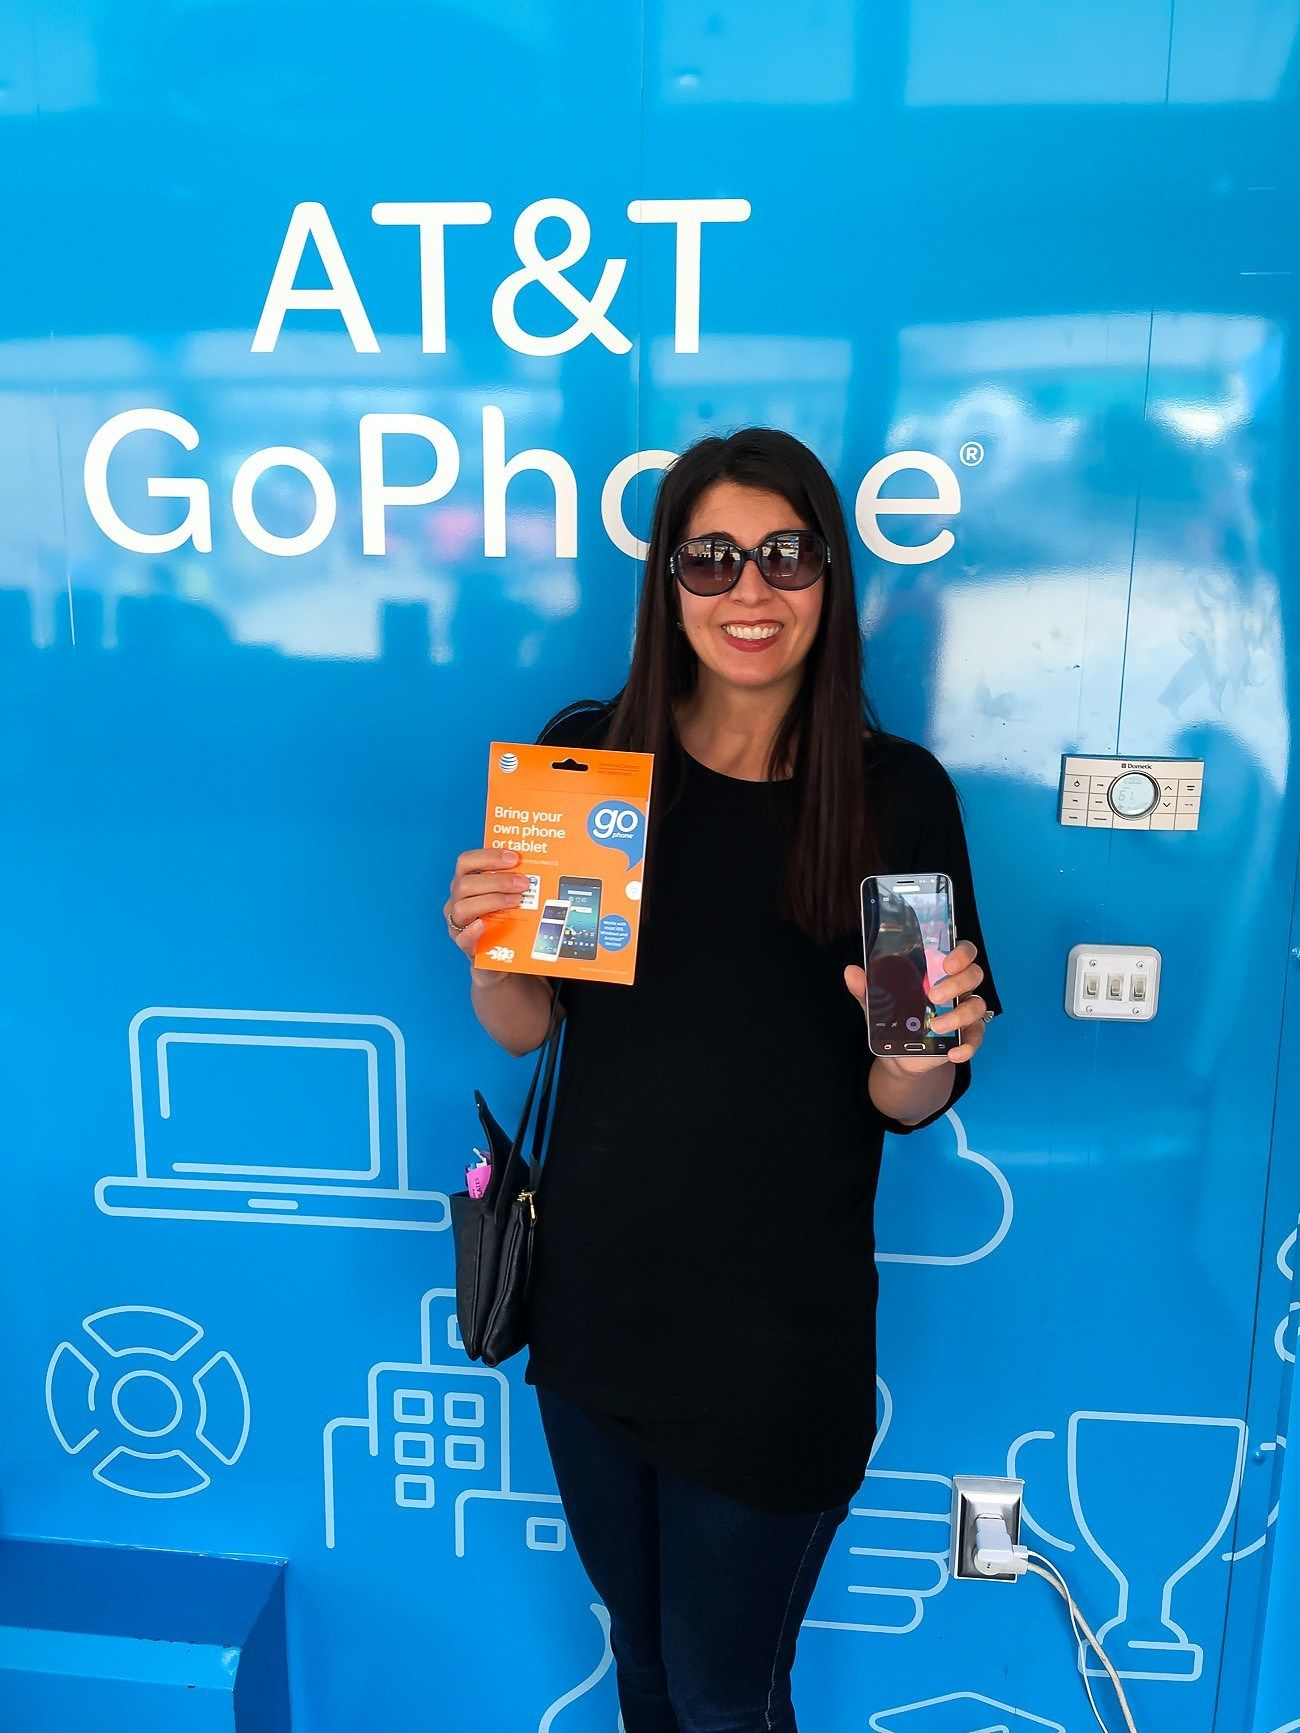 Learn why AT&T GoPhone pre-paid wireless service might work for you.